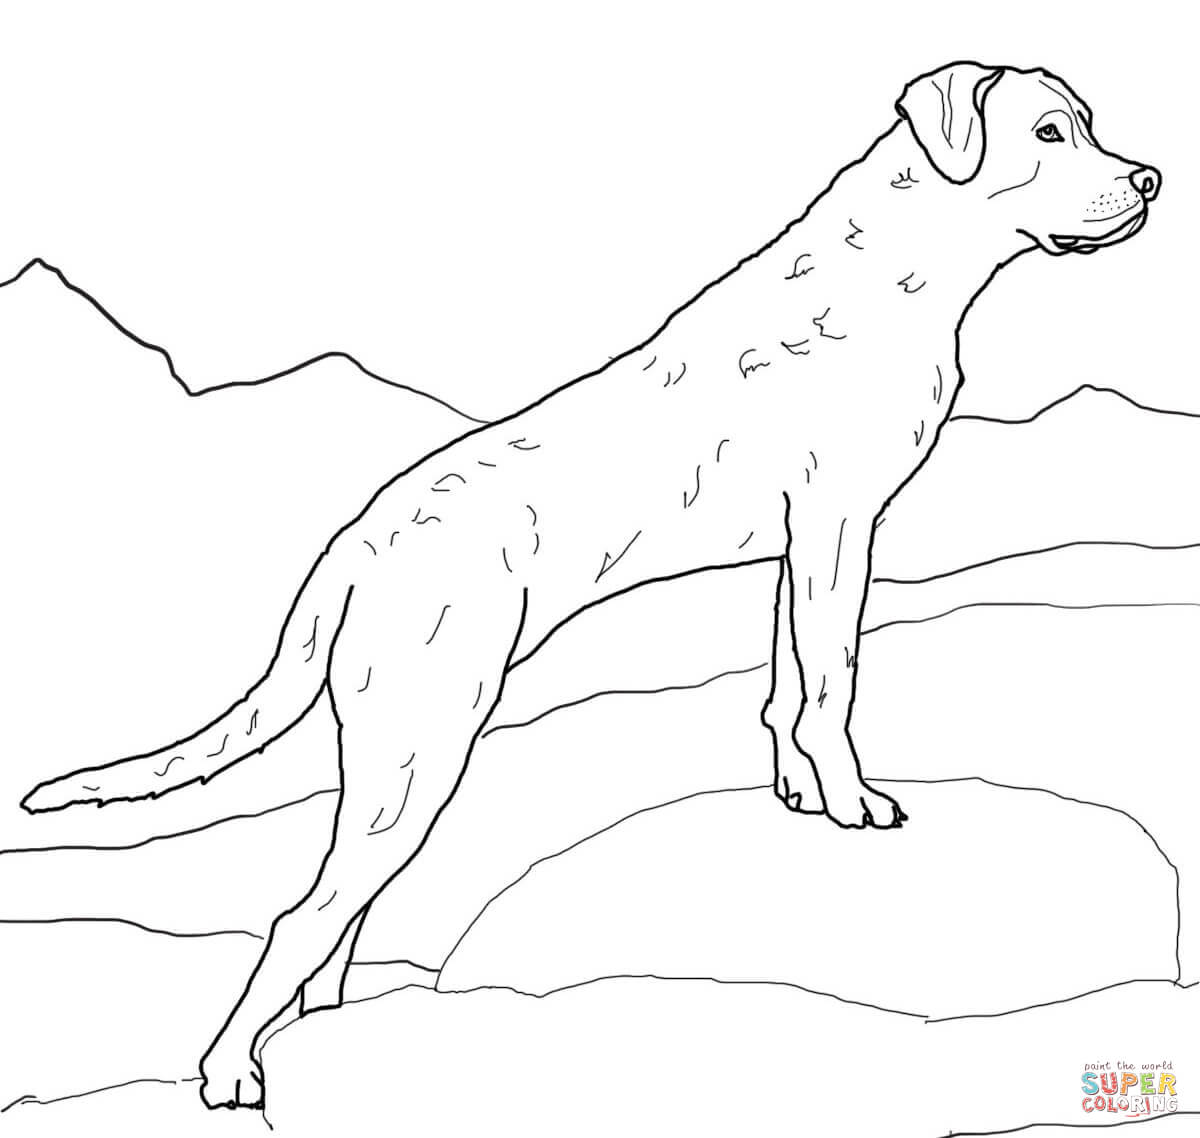 Black Labrador Drawing at GetDrawings.com   Free for personal use ...